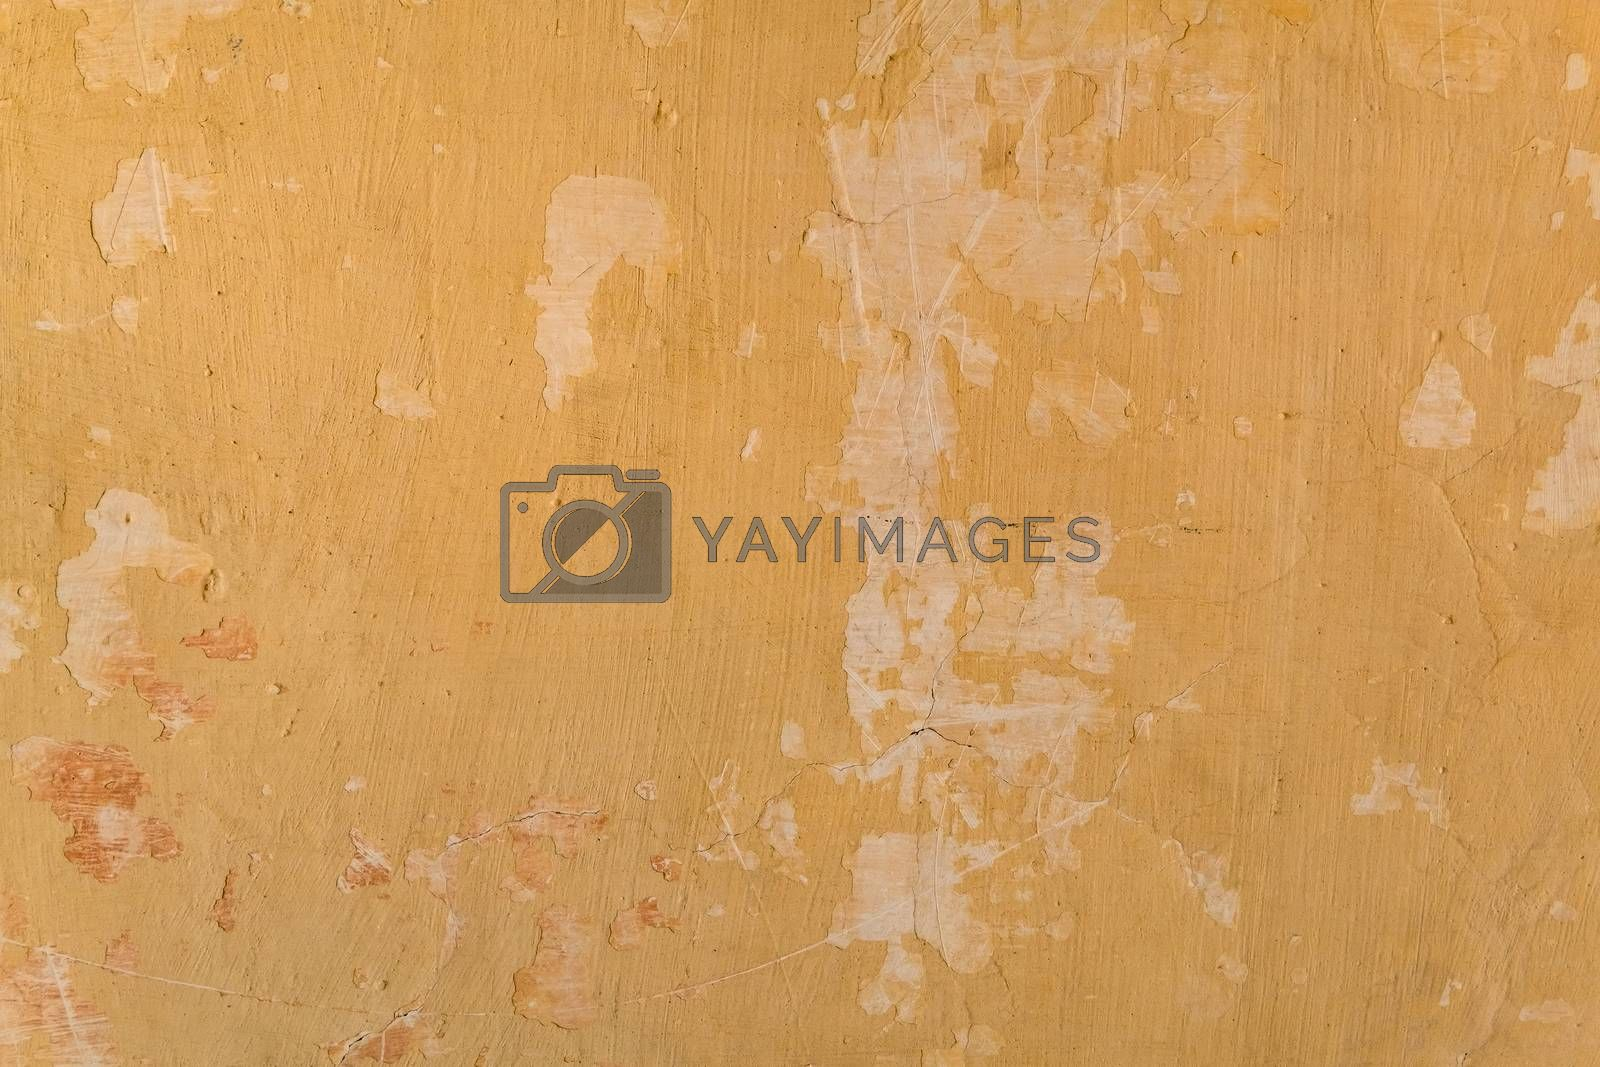 Royalty free image of Paint crack concrete wall texture background. by Tanarch